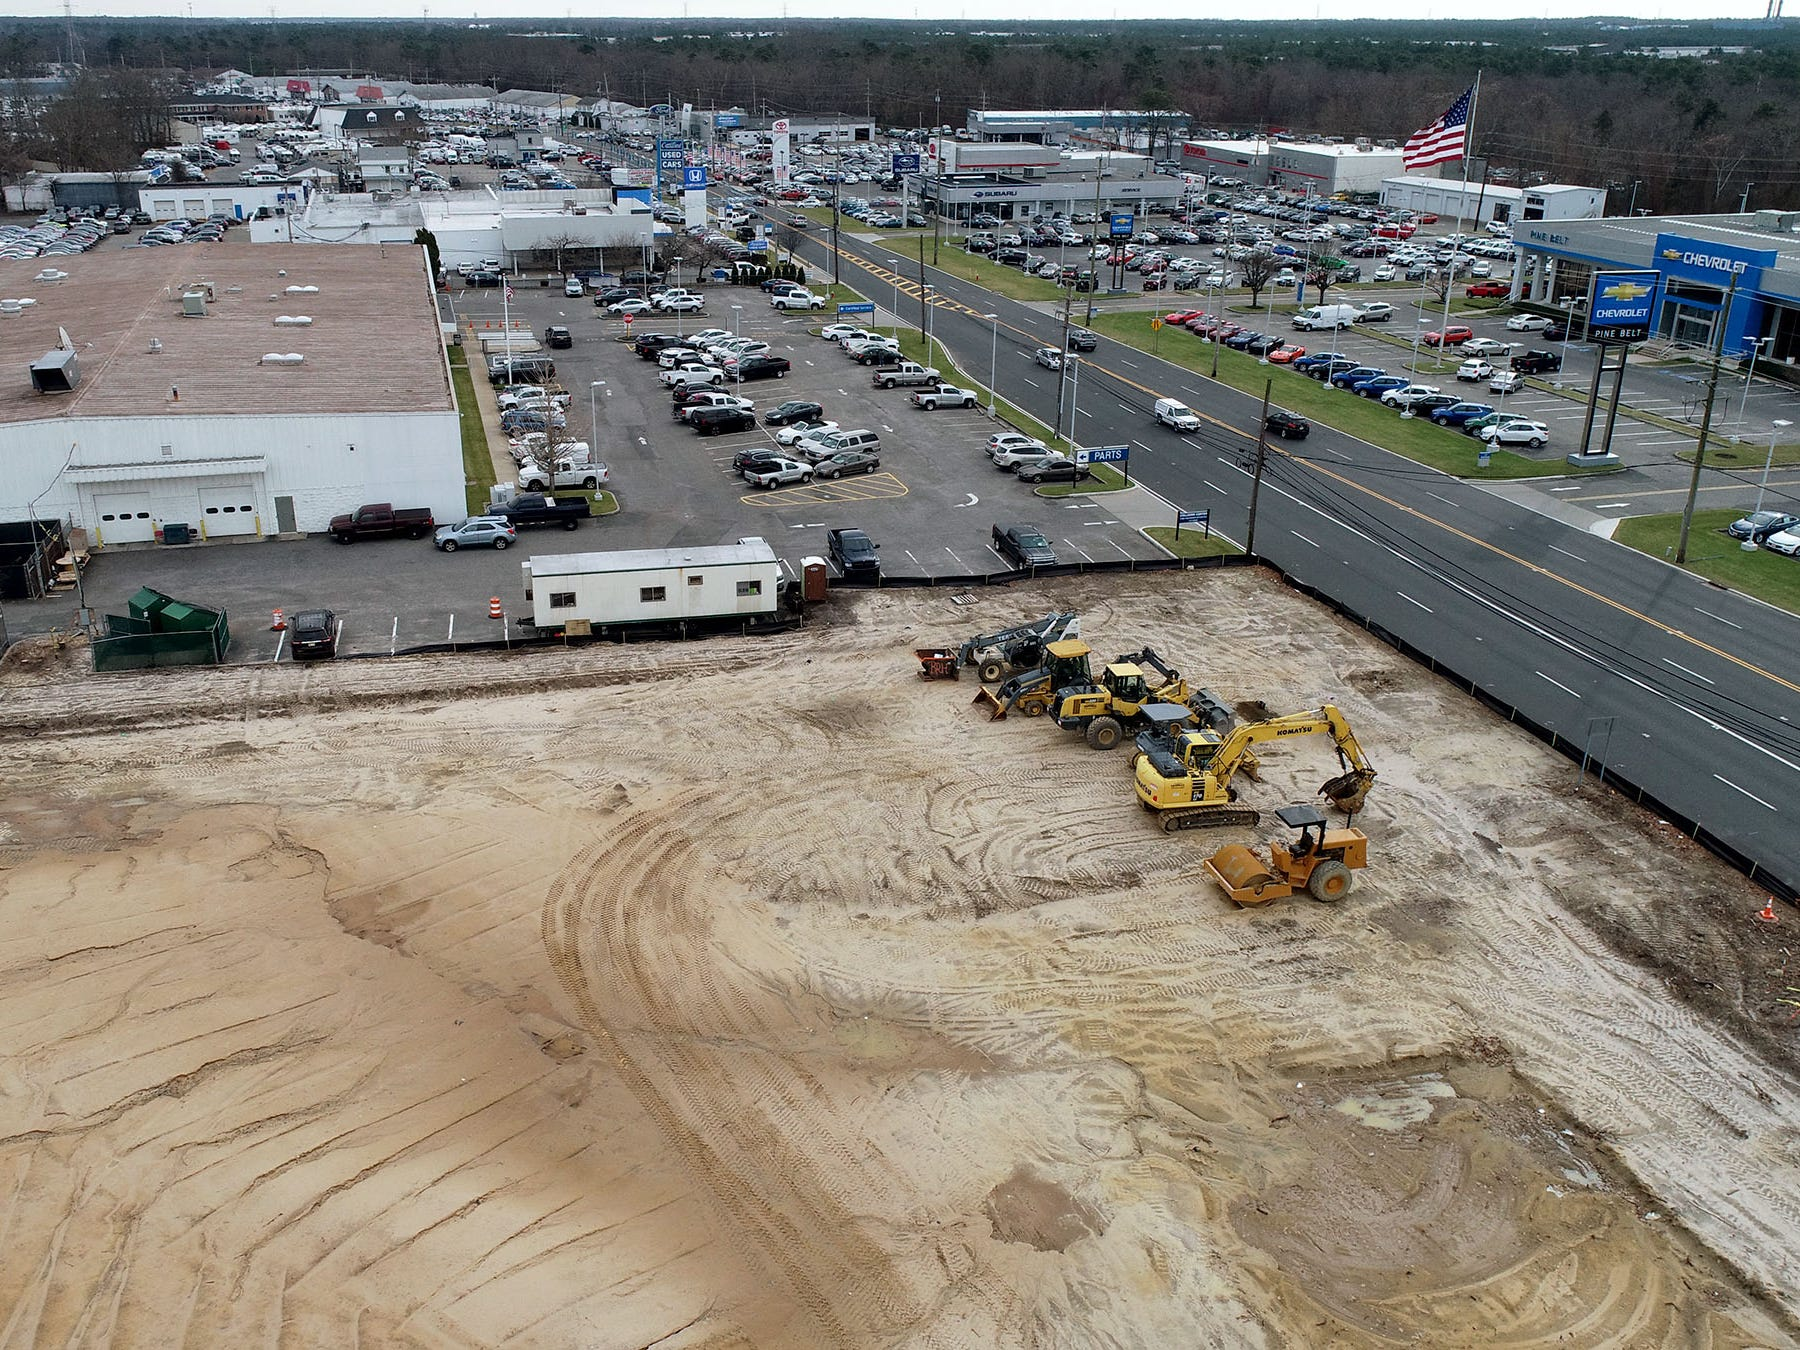 Land is cleared for a new car dealership along Route 88 at New Hampshire Avenue in Lakewood shown Thursday, January 3, 2019.